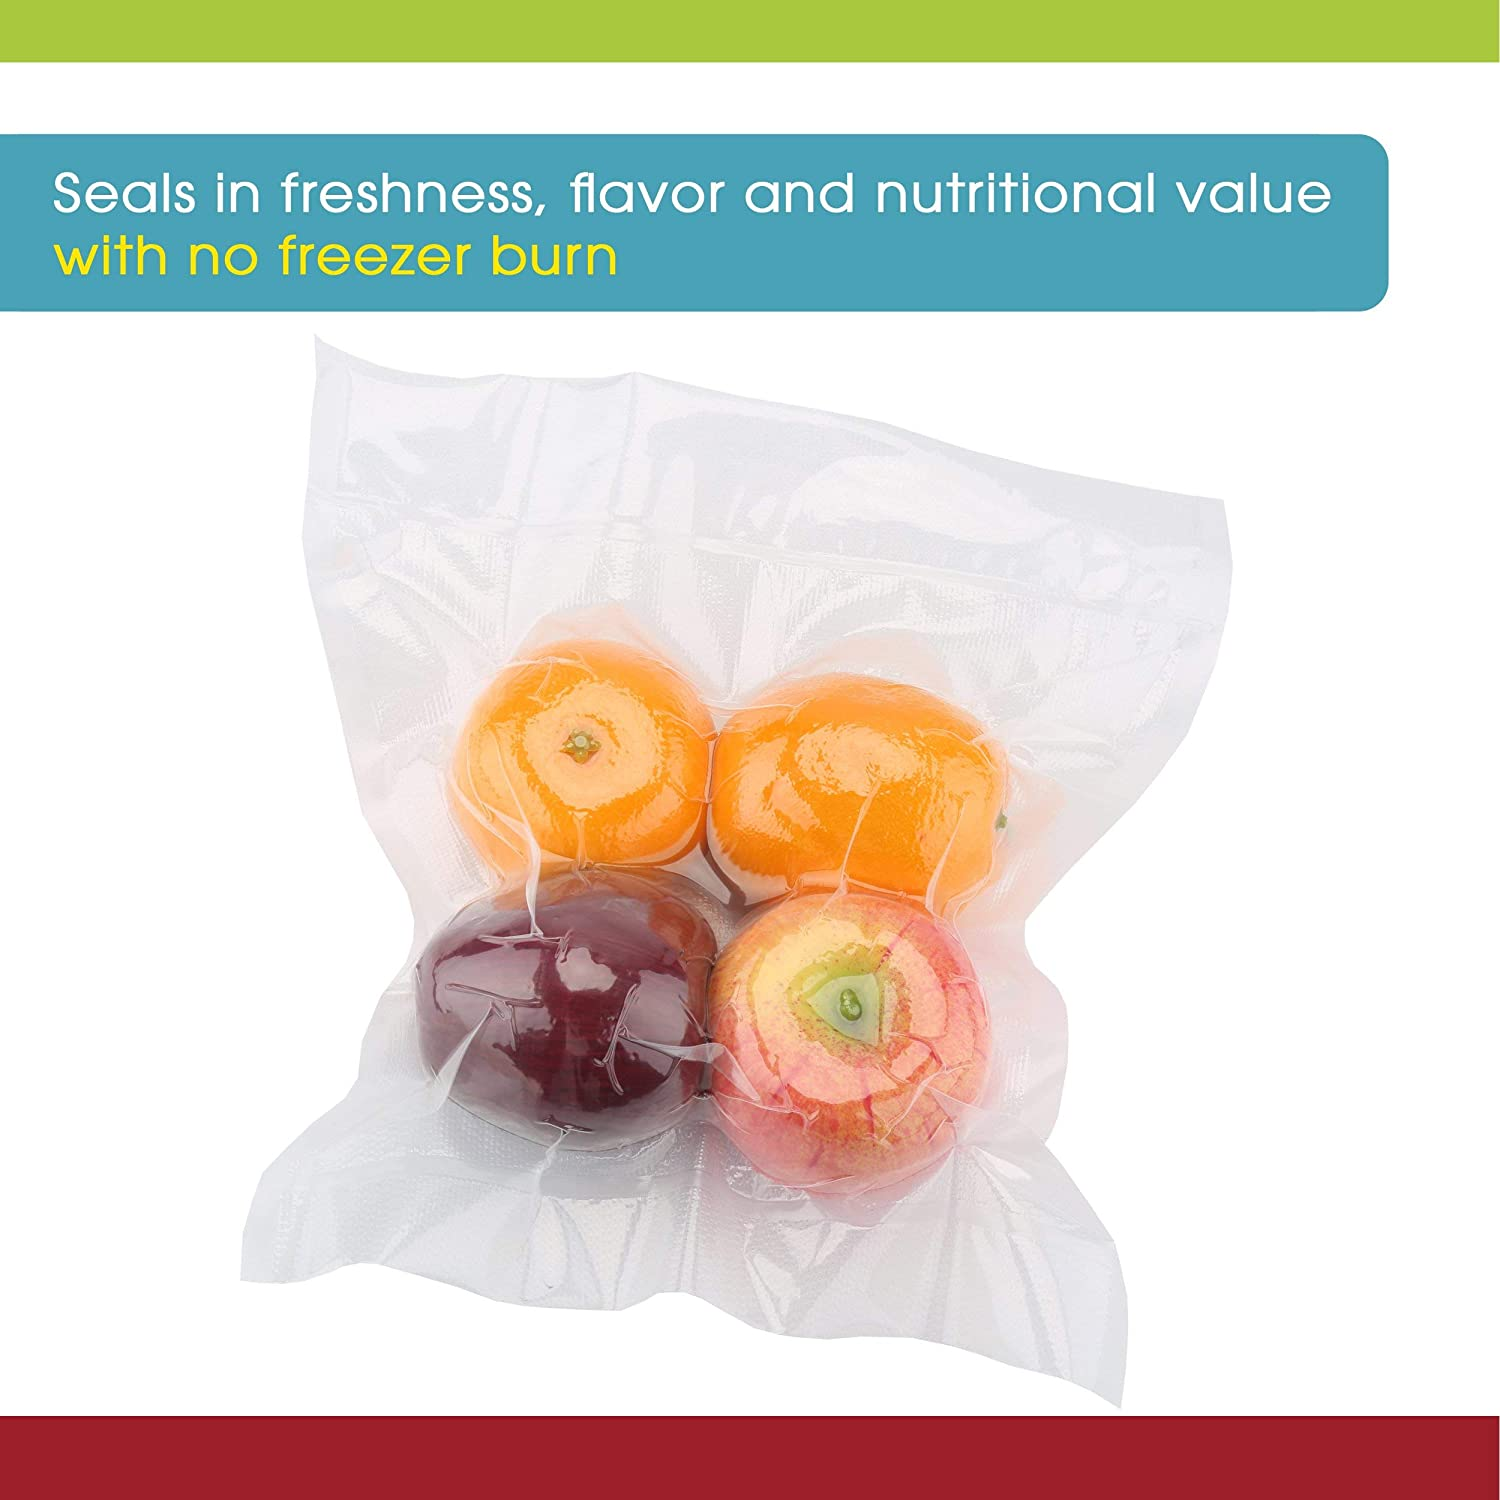 Perfect for Custom-Sized Pouches FDA Approved and Phthalate Free Freeze Refrigerate BPA Vacuum Sealer Bags for Maximum Freshness Vacuum Seal Rolls 8 Inches x 20 Ft by Vesta Precision Works with Most External Clamp Vacuum Mach Lead Microwave